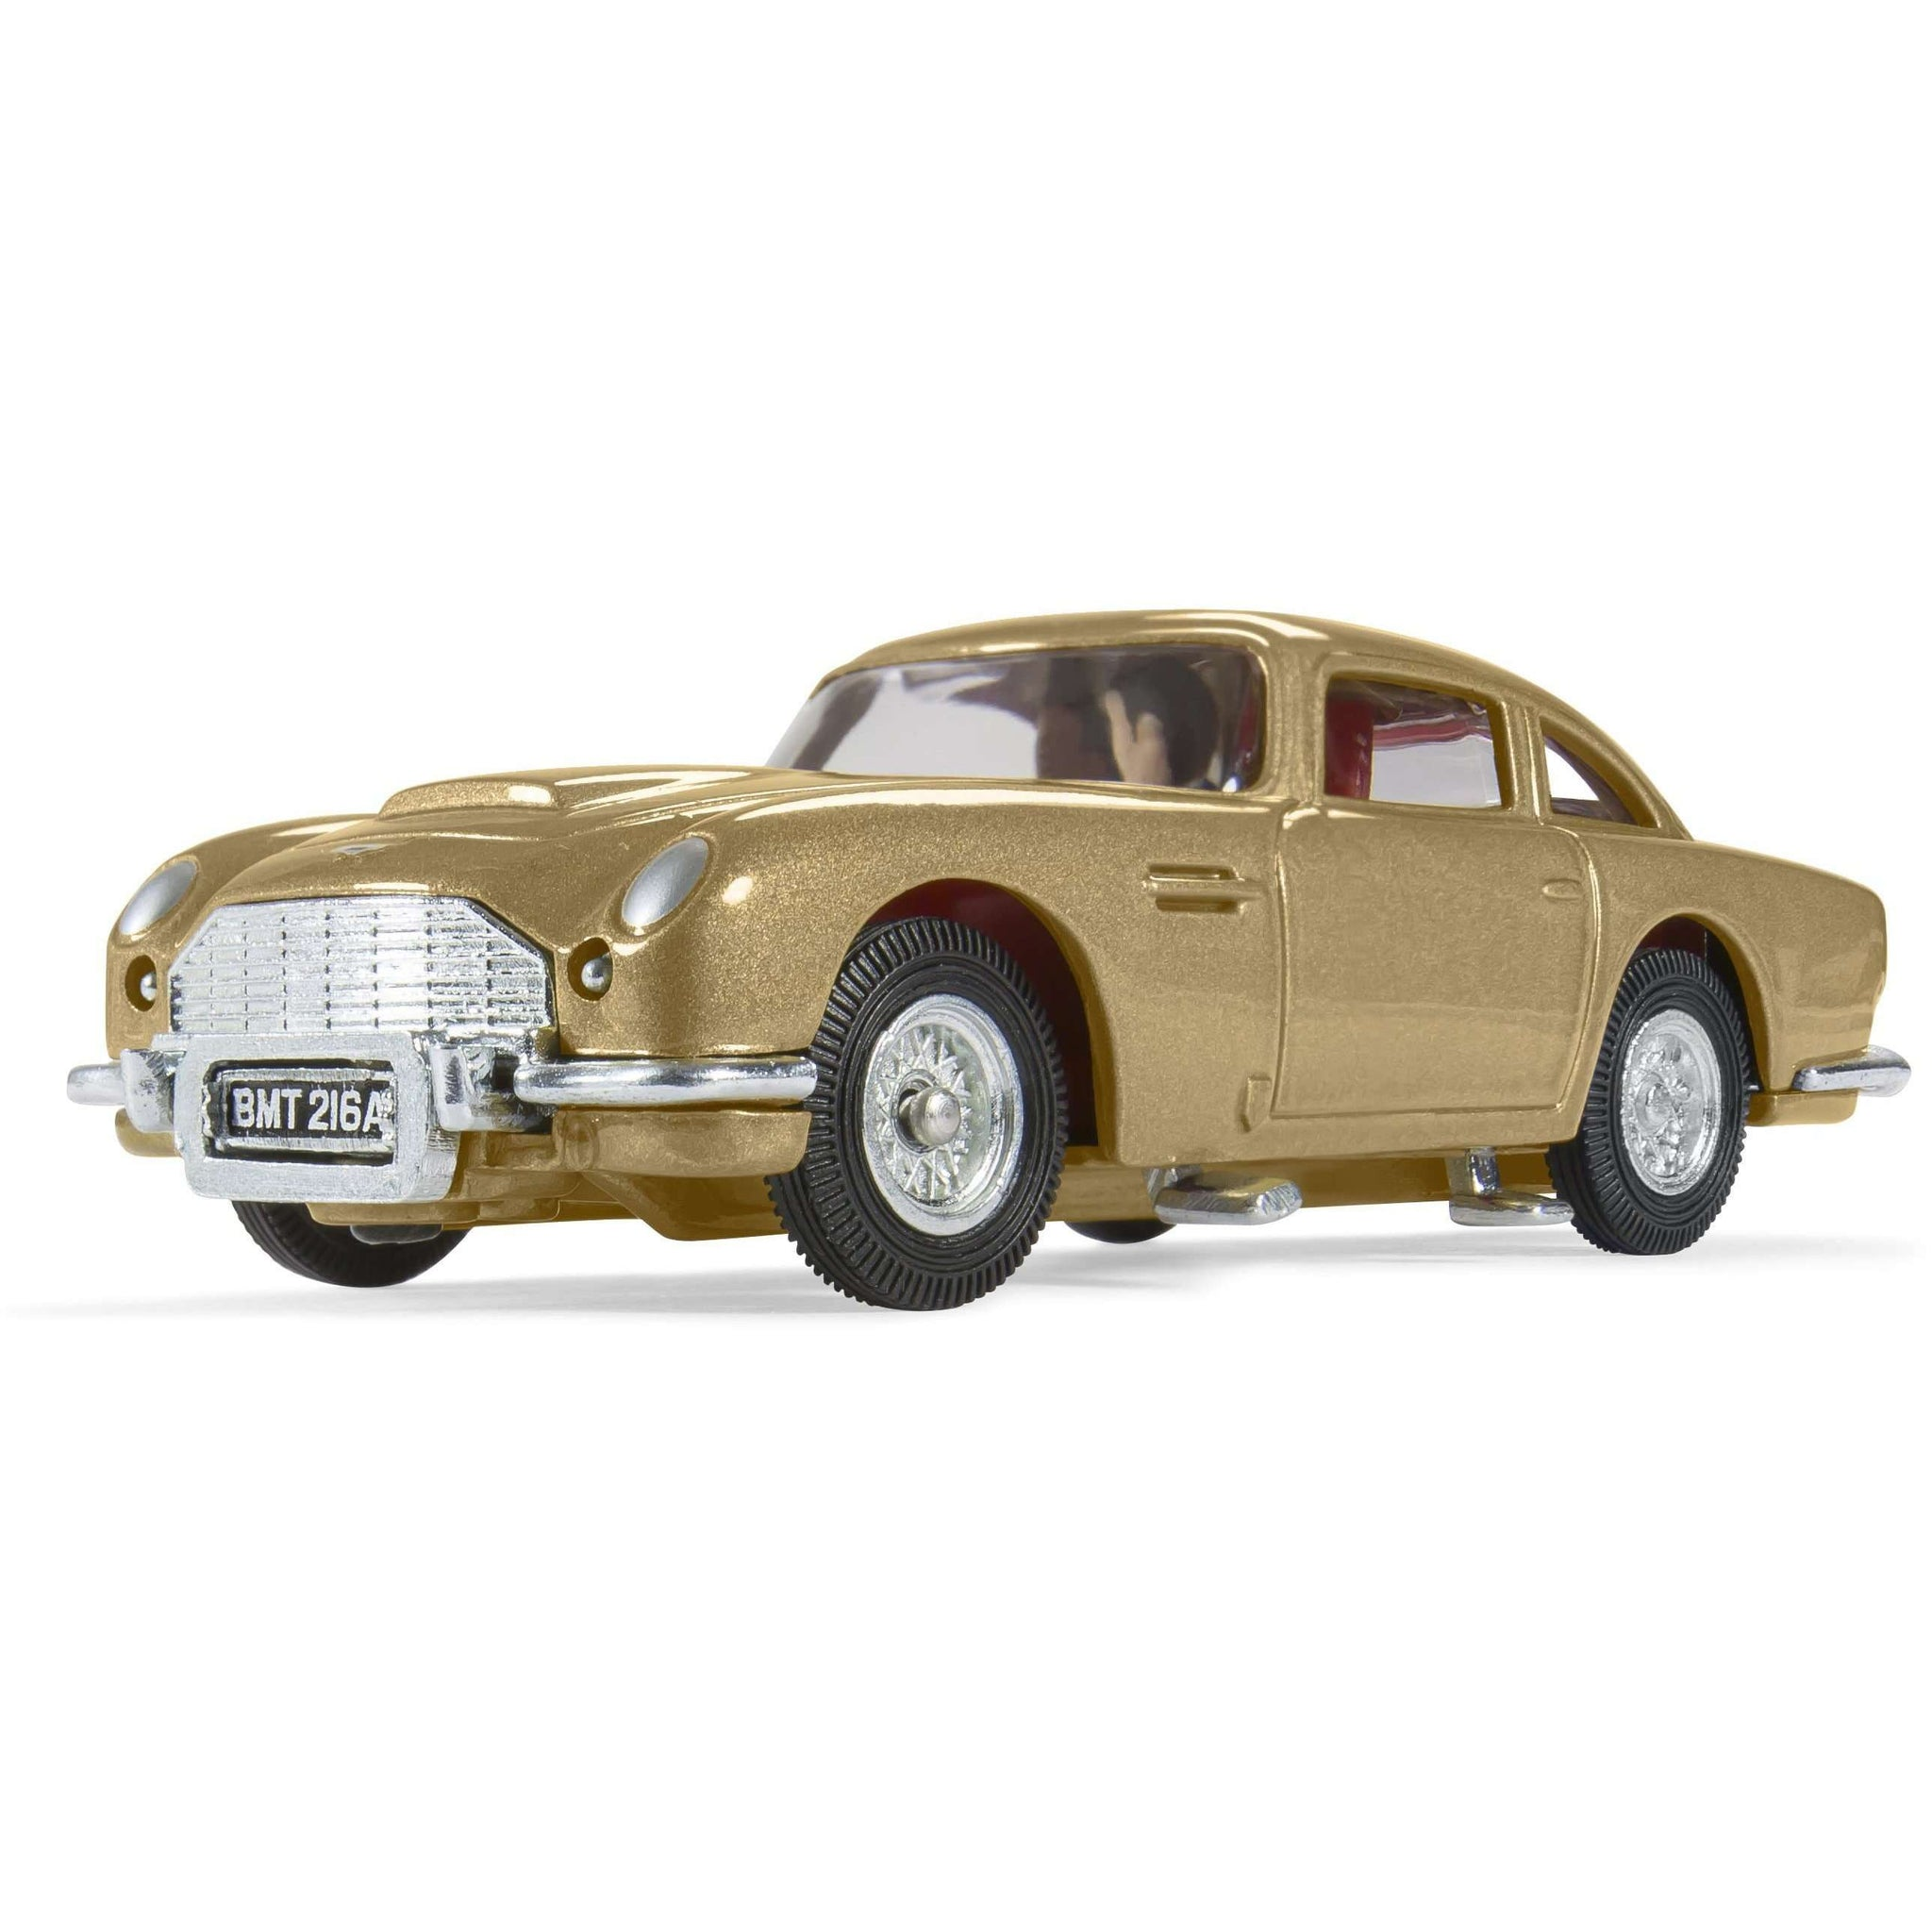 Aston Martin Db5 Model With Ejector Seat L 007 Store